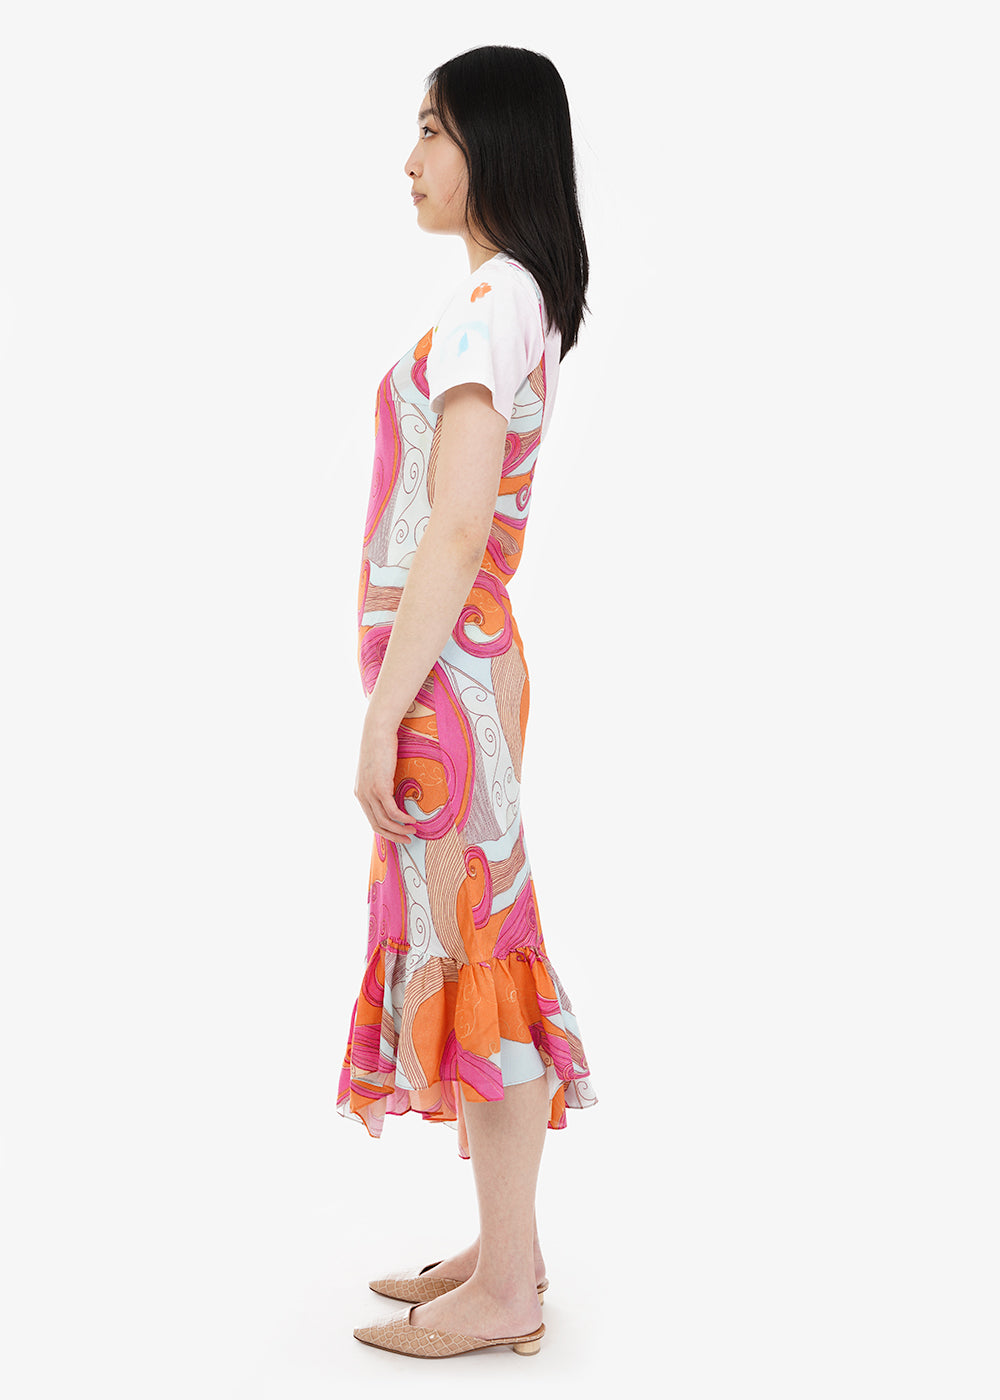 Collina Strada Pink Swirls Michi Dress — Shop sustainable fashion and slow fashion at New Classics Studios